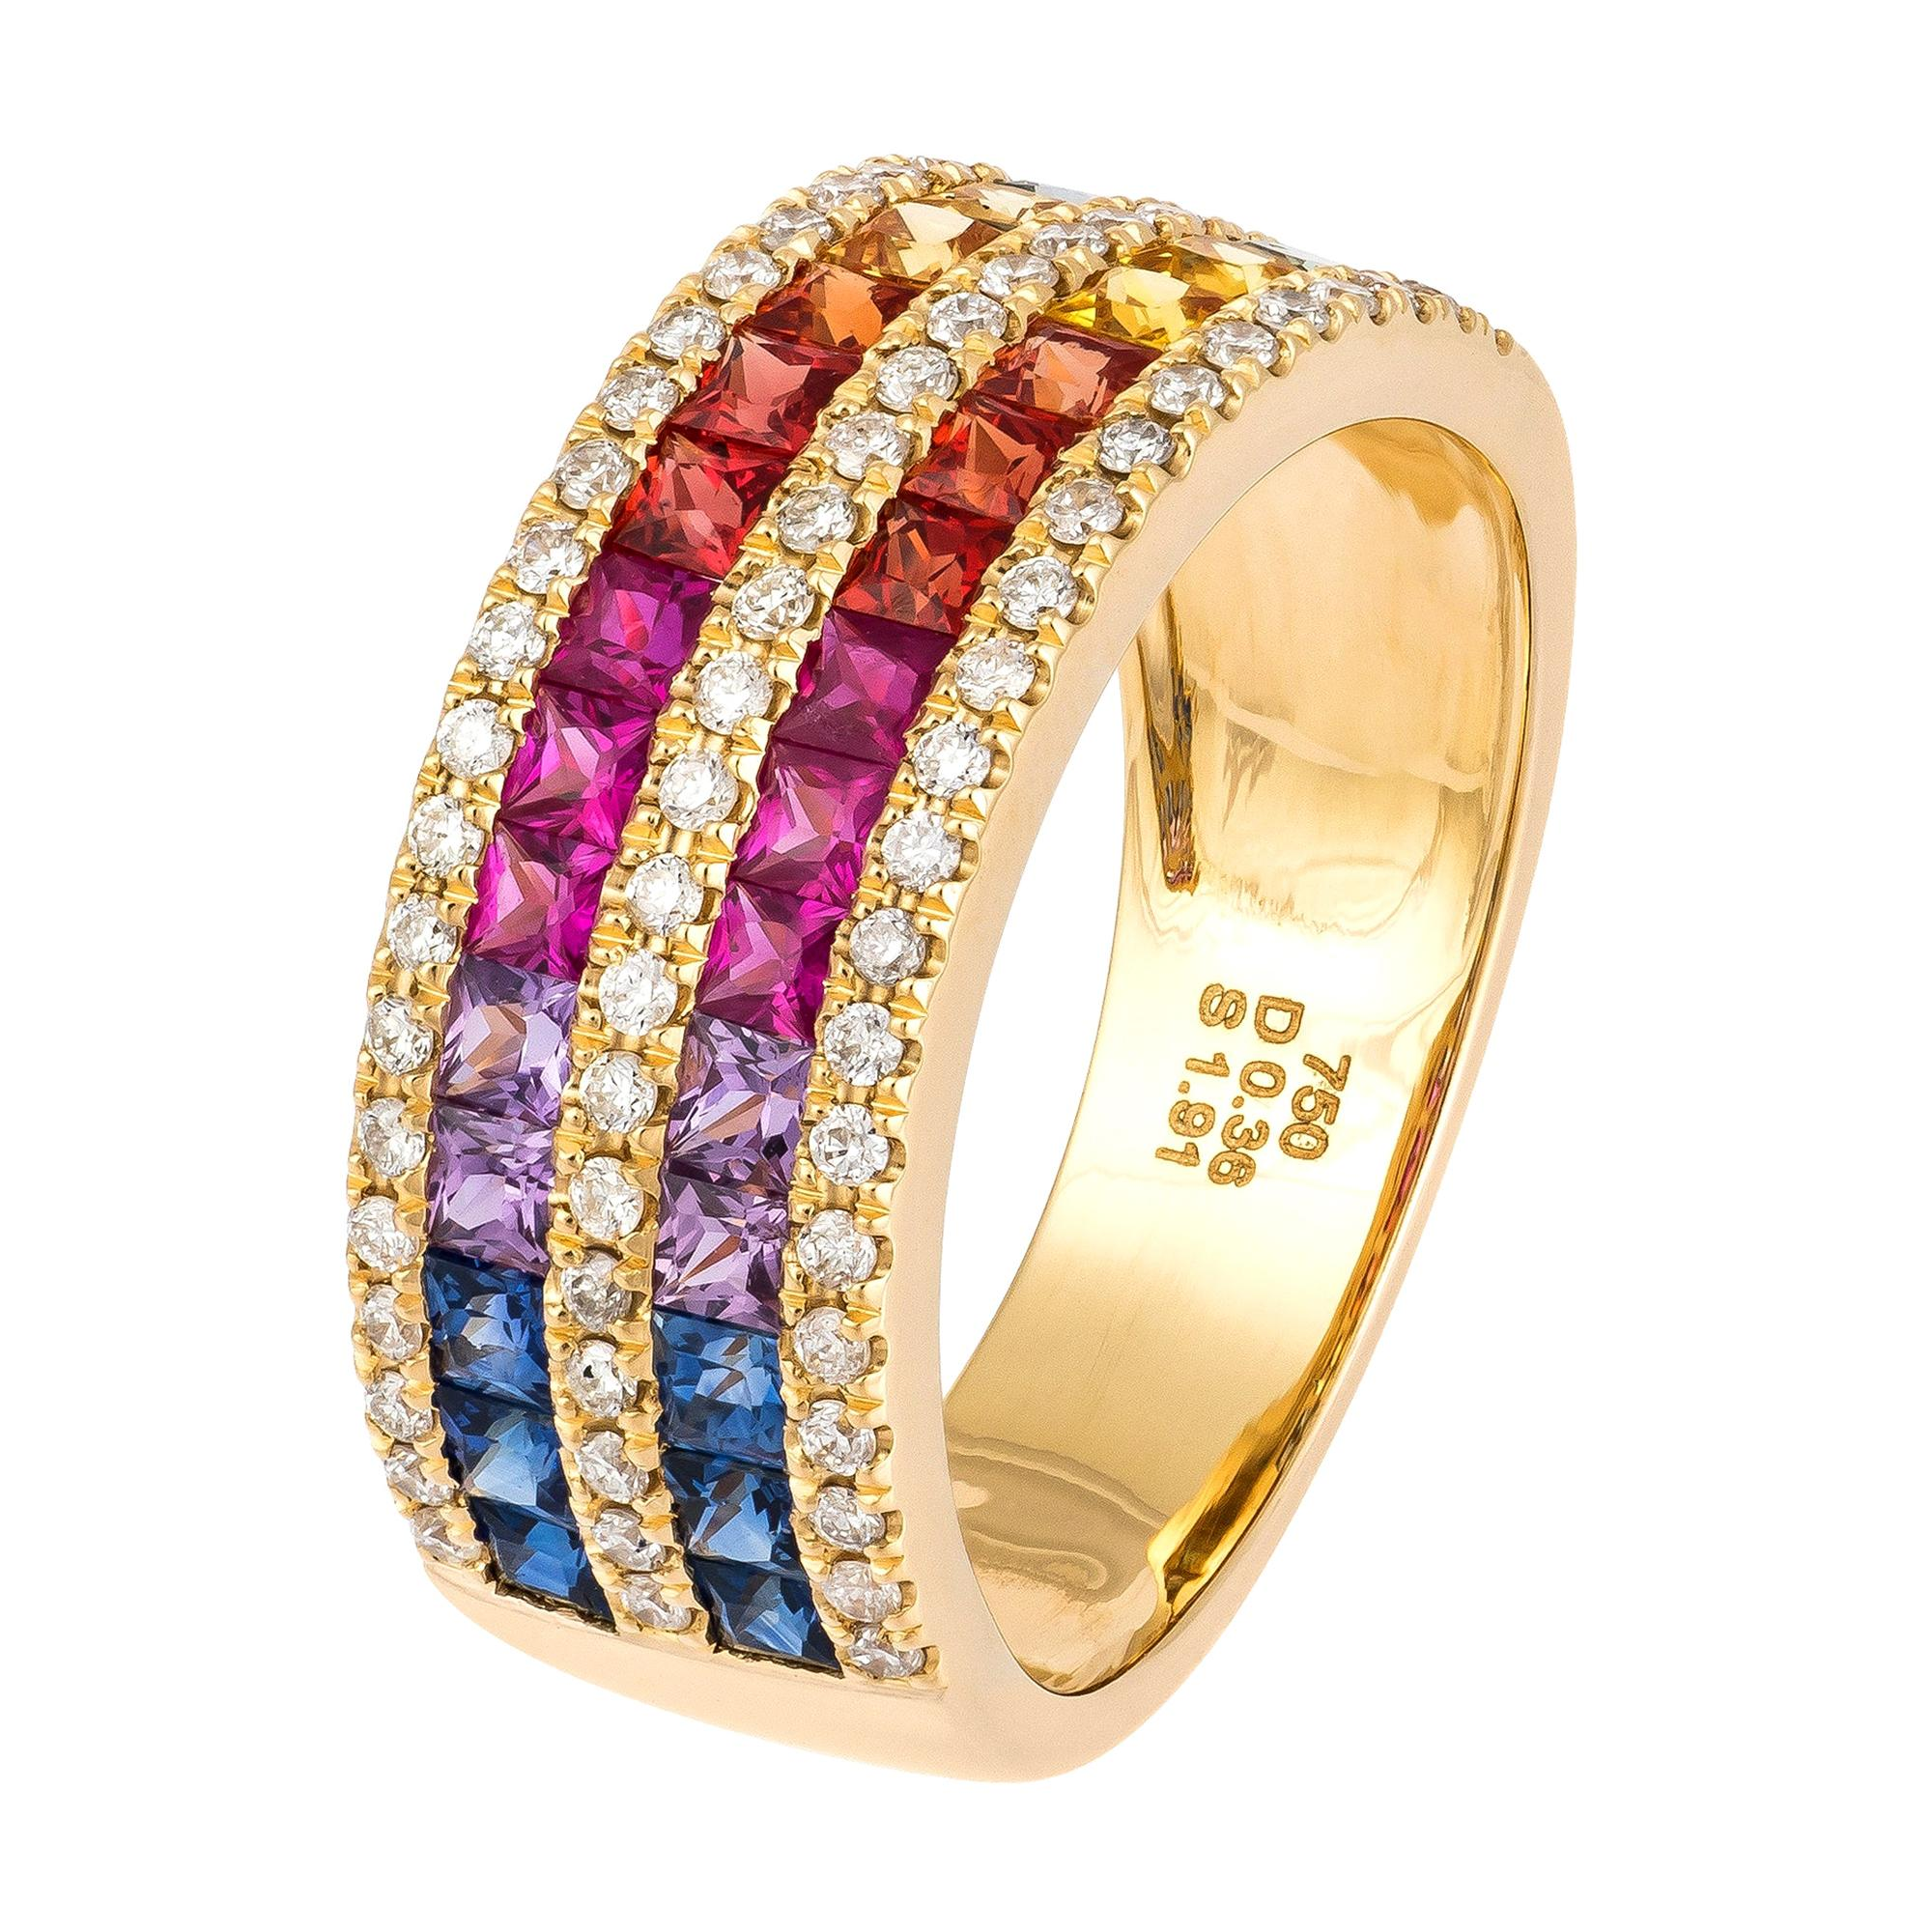 Attractive Multisapphire Diamond Rose Gold 18K Ring for Her